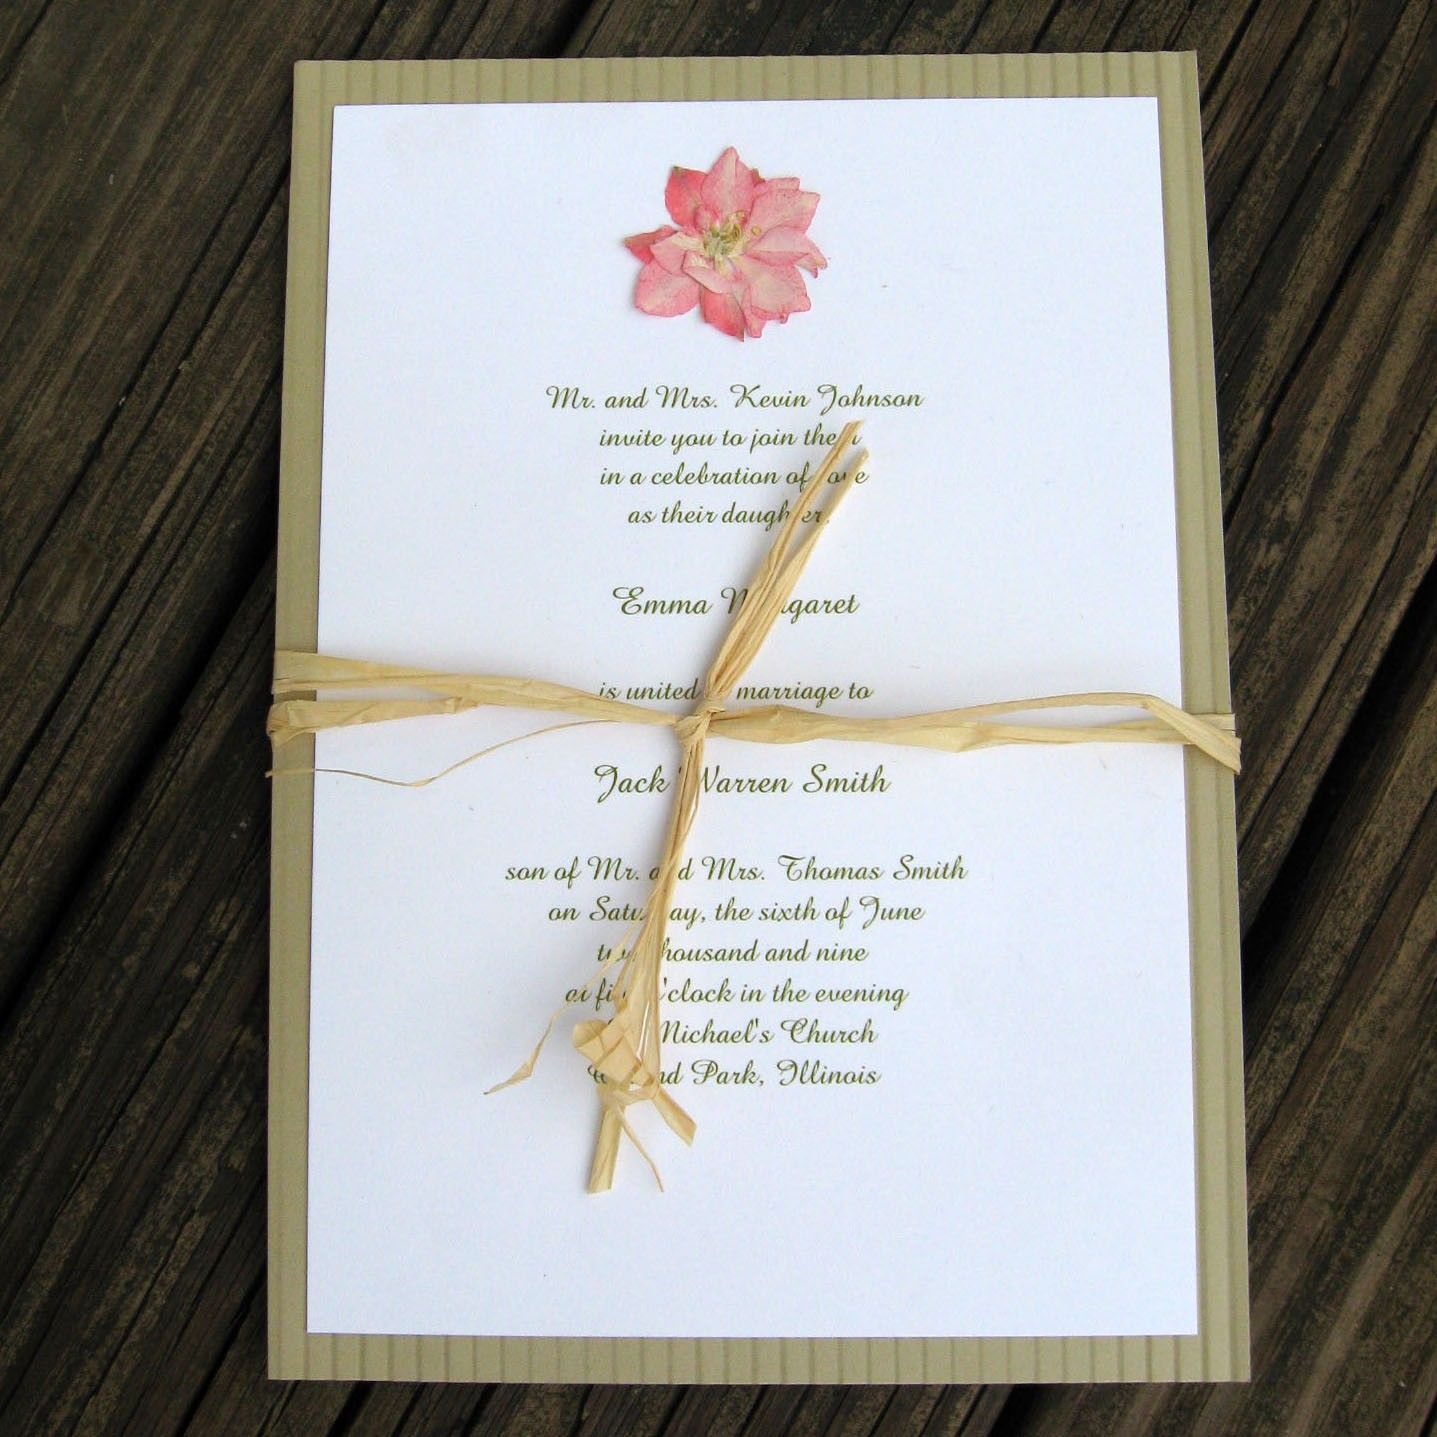 wedding invitation email free%0A wedding invitation pressed flower  Google Search